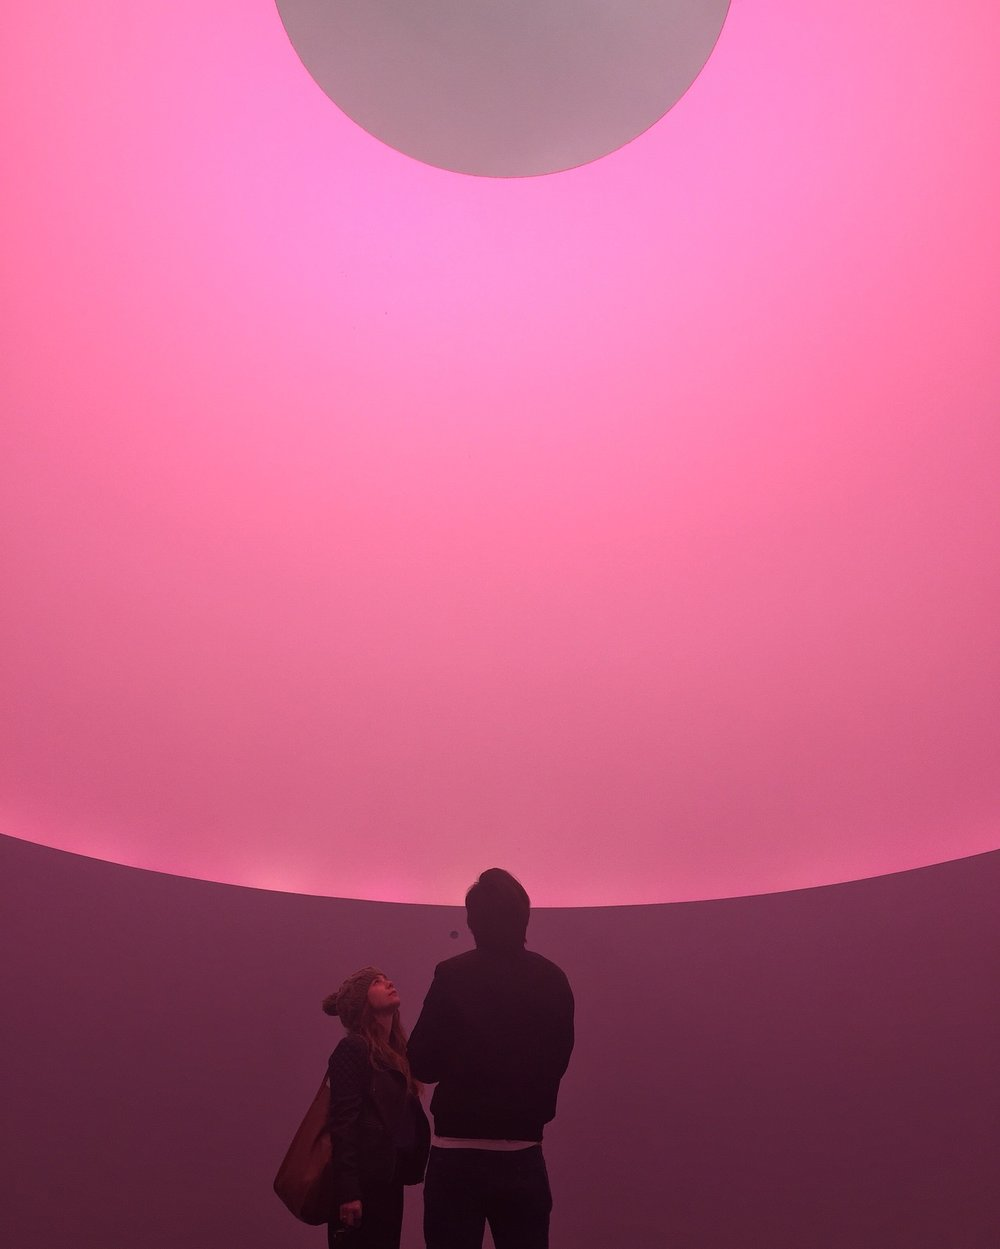 James Turrell, National Gallery - image by  Kara Town